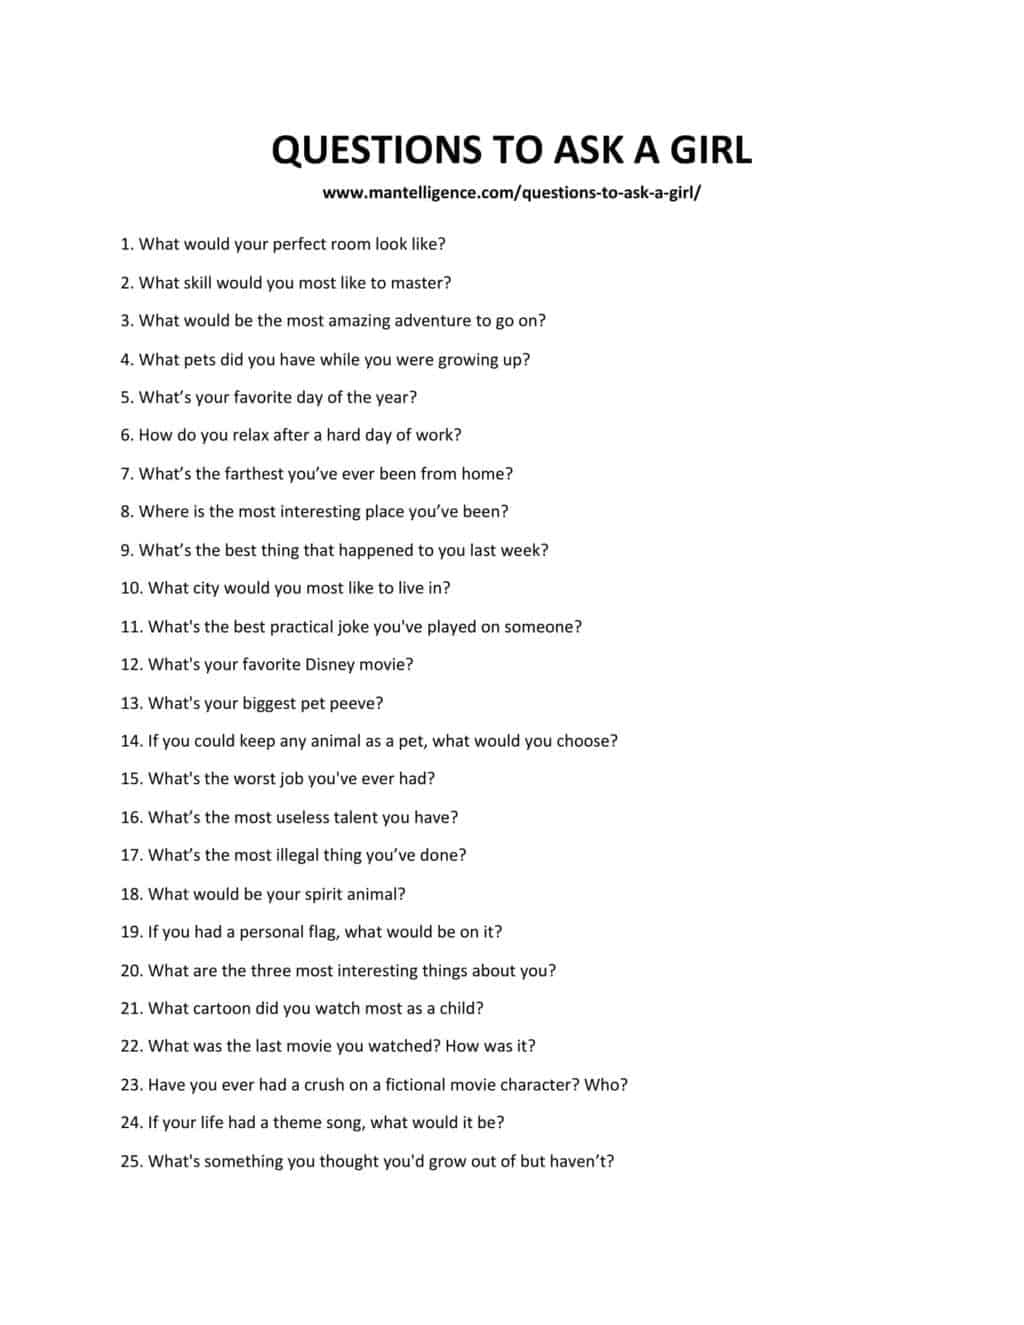 QUESTIONS TO ASK A GIRL-1